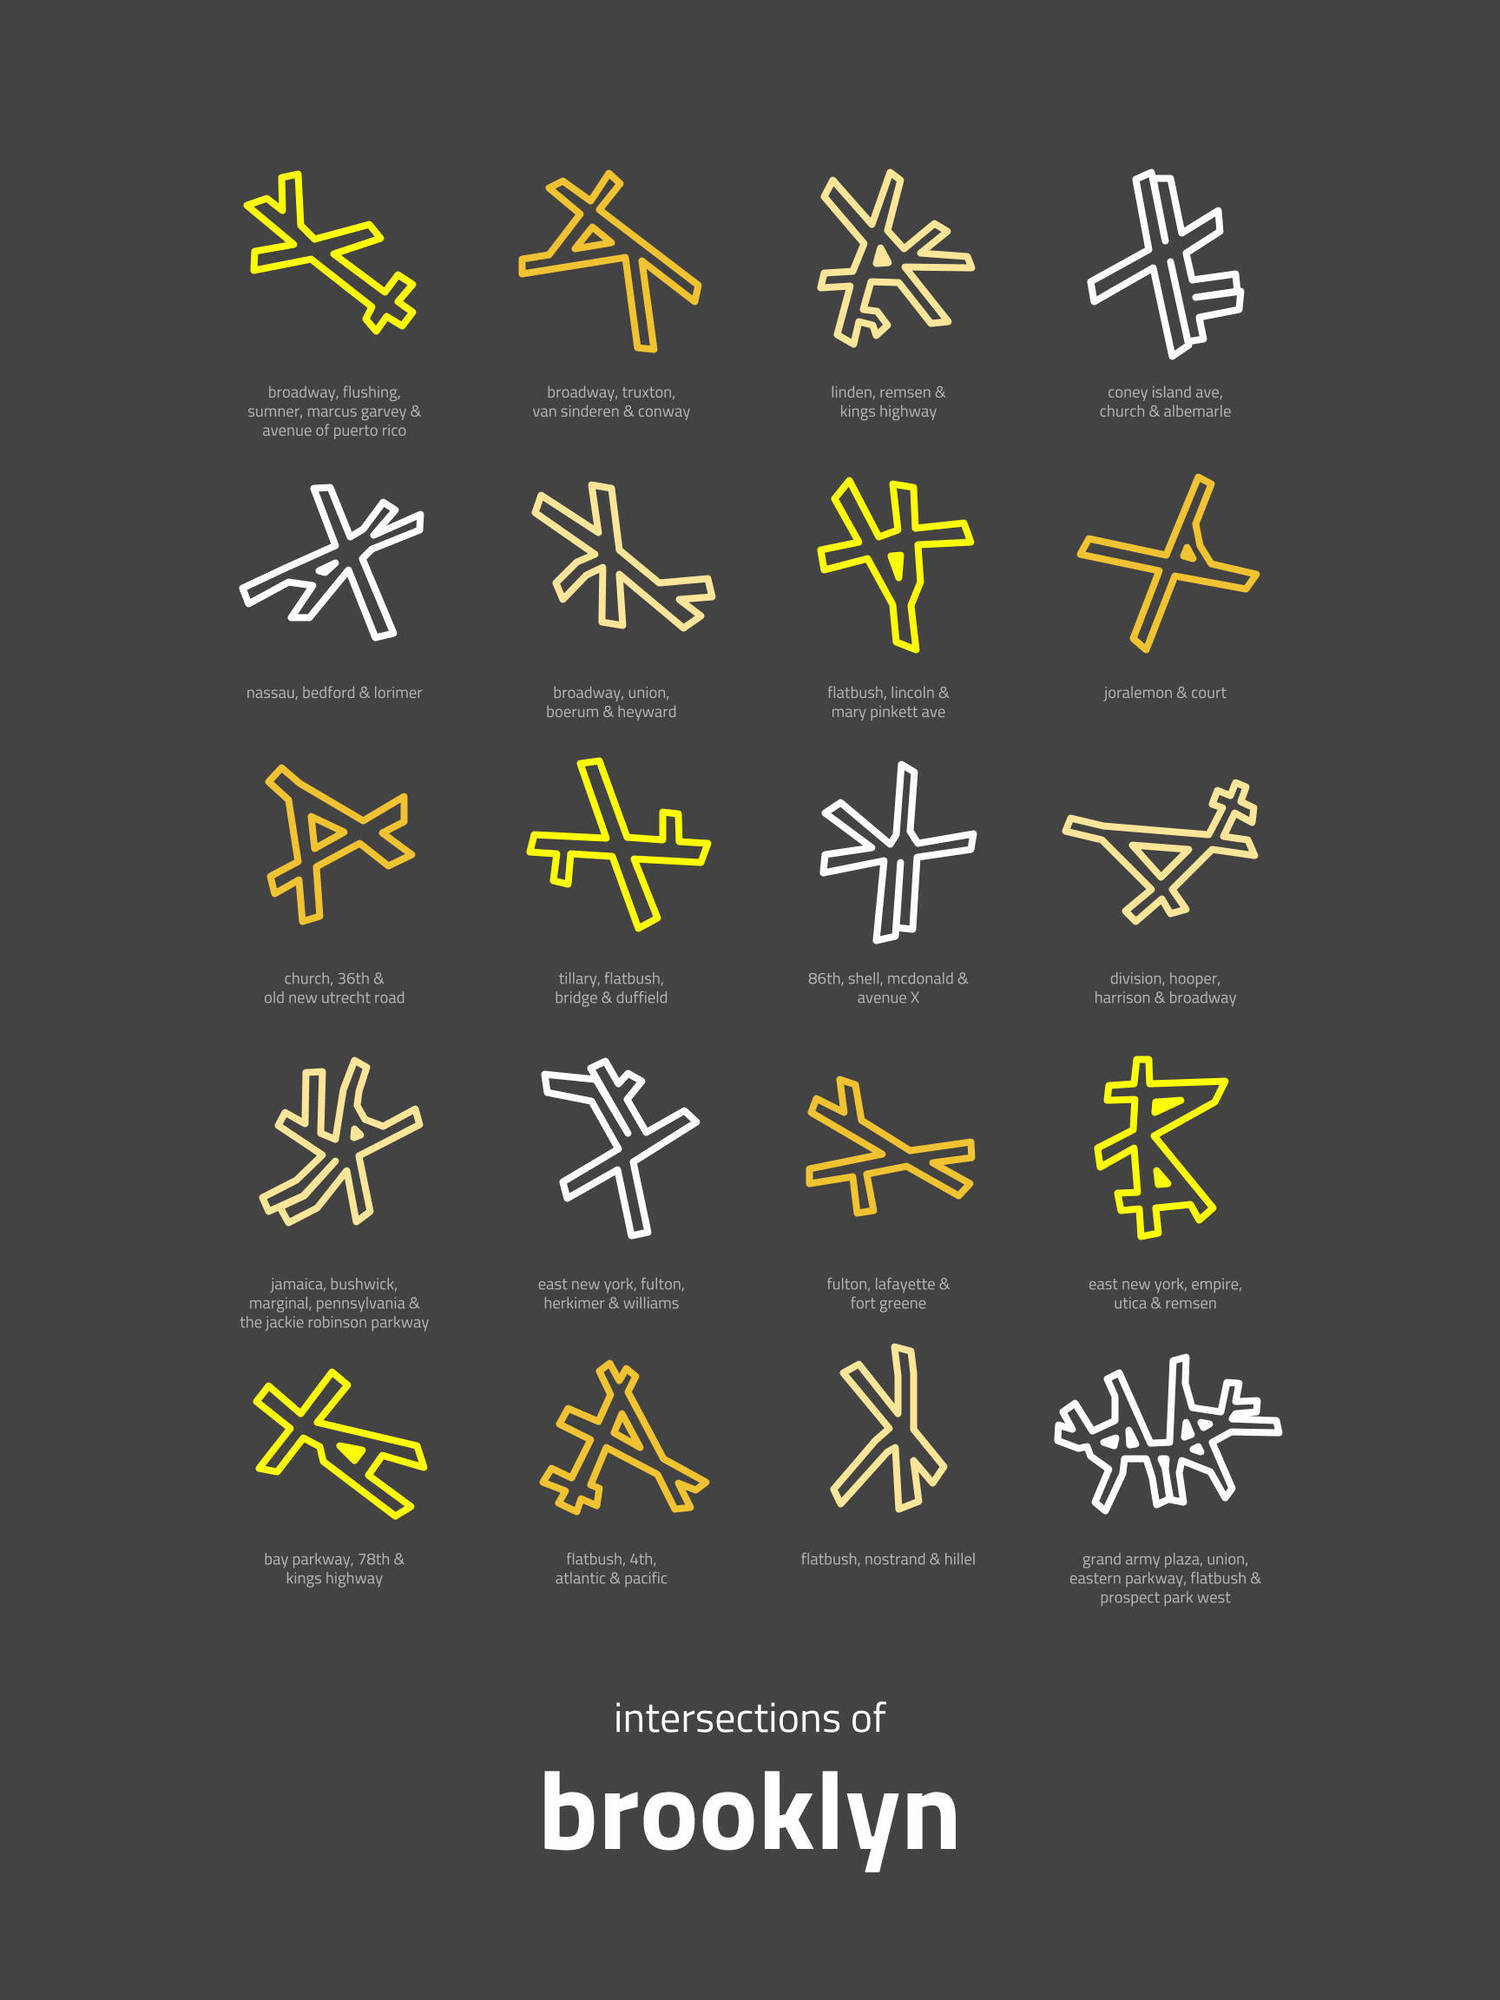 Brooklyn Intersections